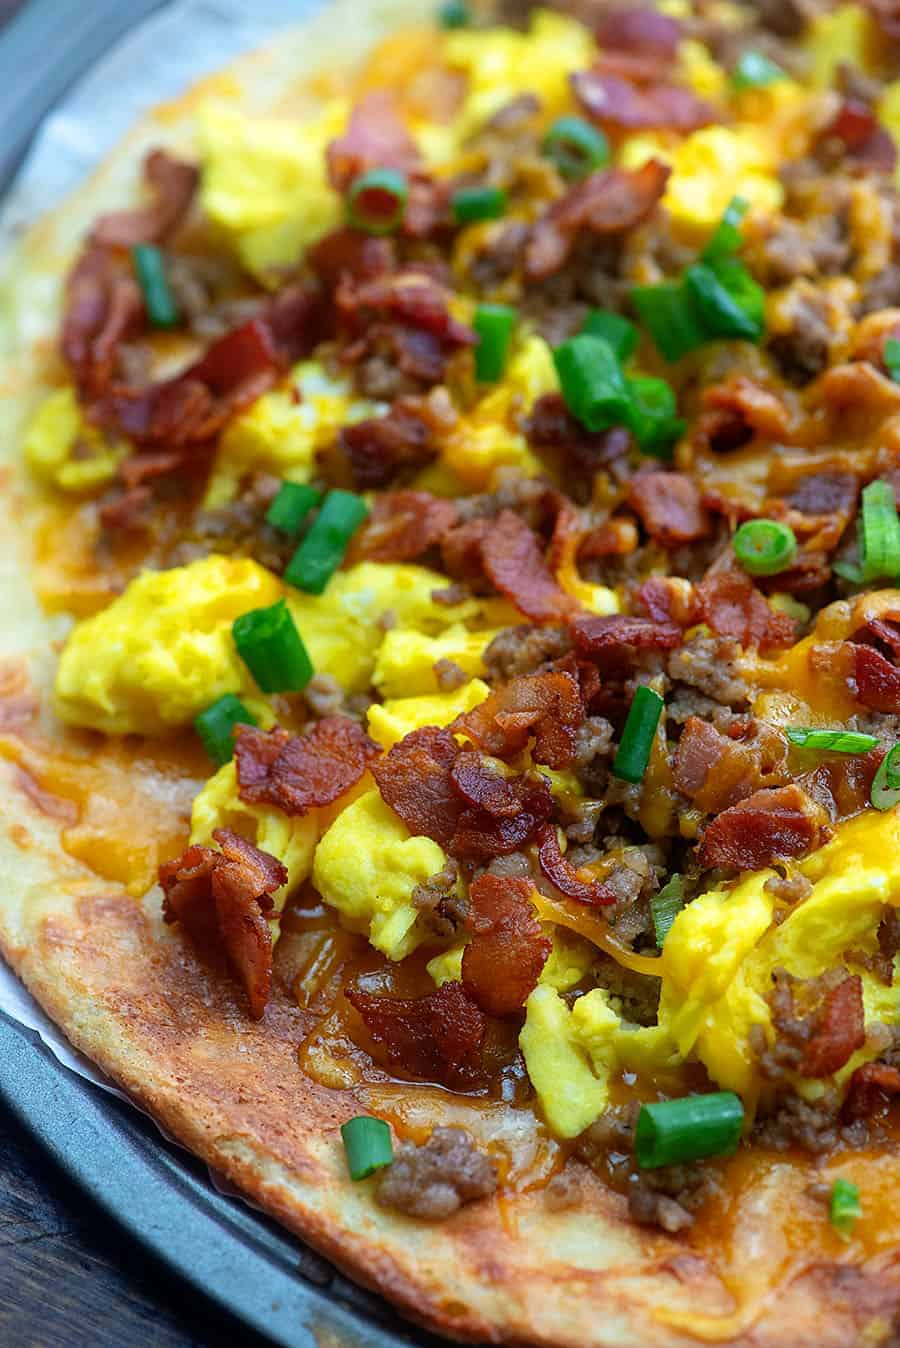 keto breakfast pizza recipe on pizza pan